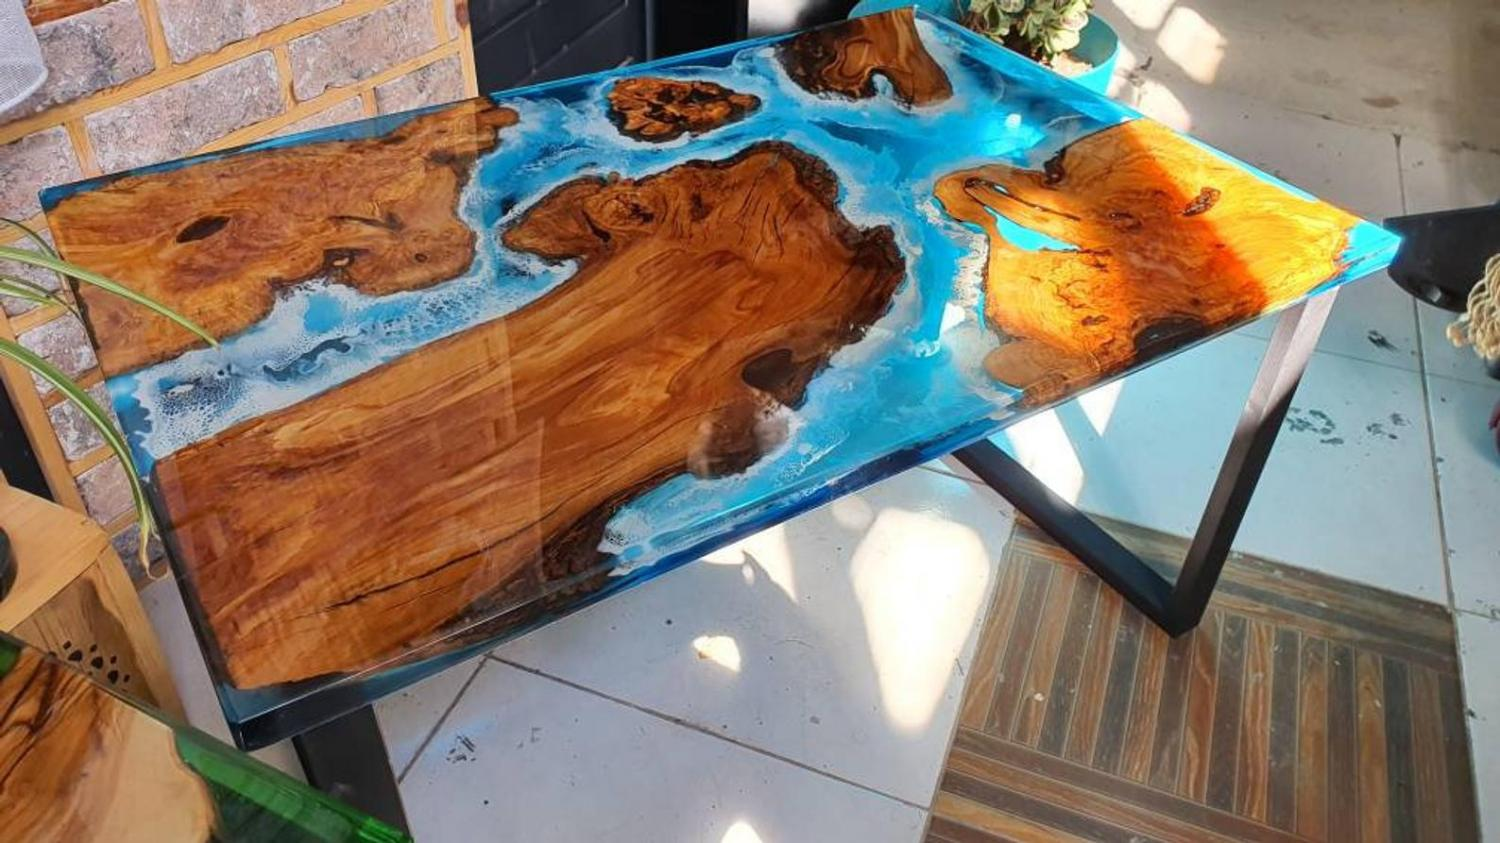 A similar epoxy table with bright blue waters surrounding islands made from olive wood